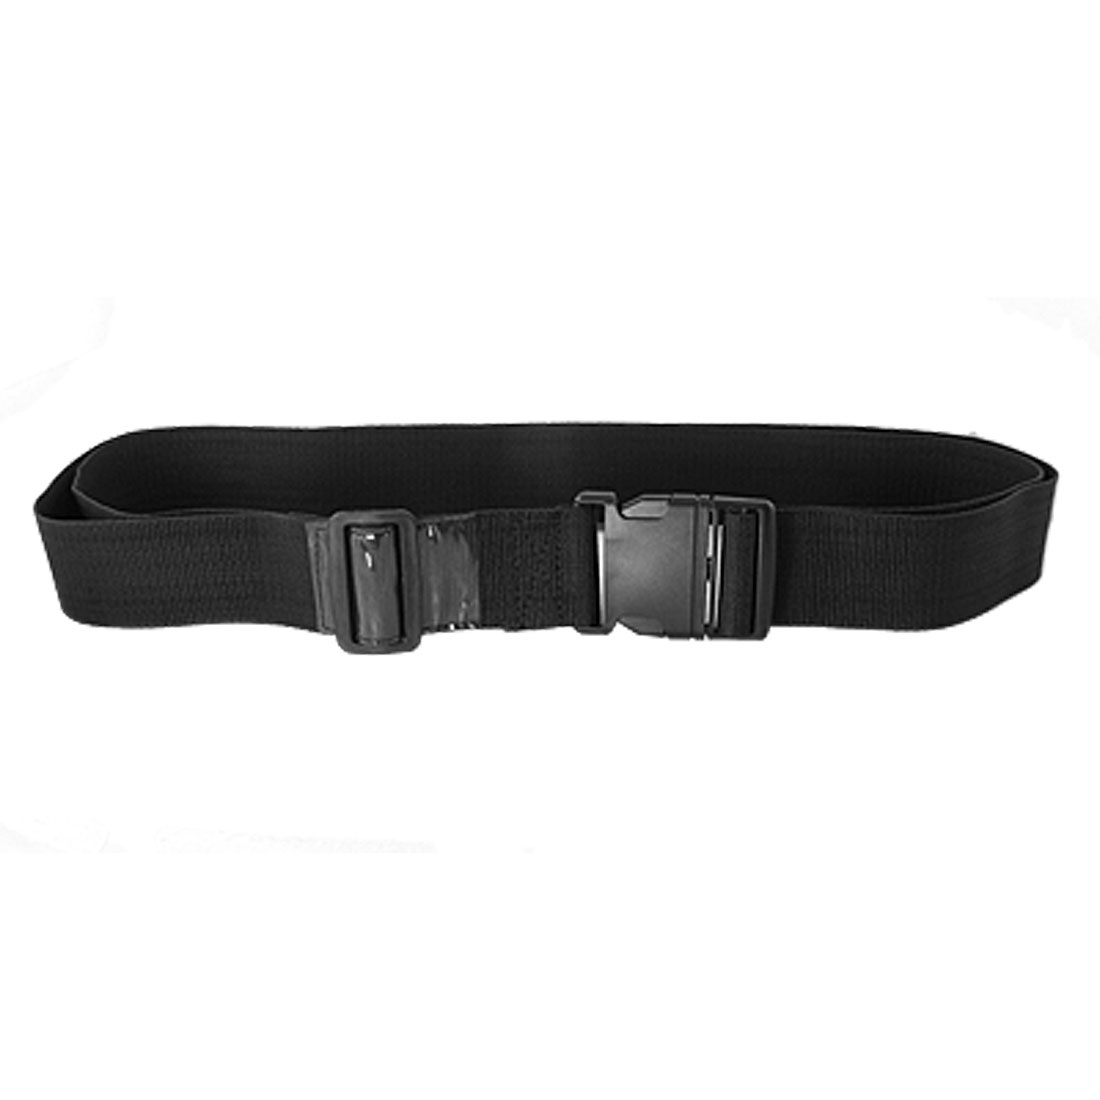 Black Side Release Buckle Adjustable Nylon Suitcase Luggage Strap Belt